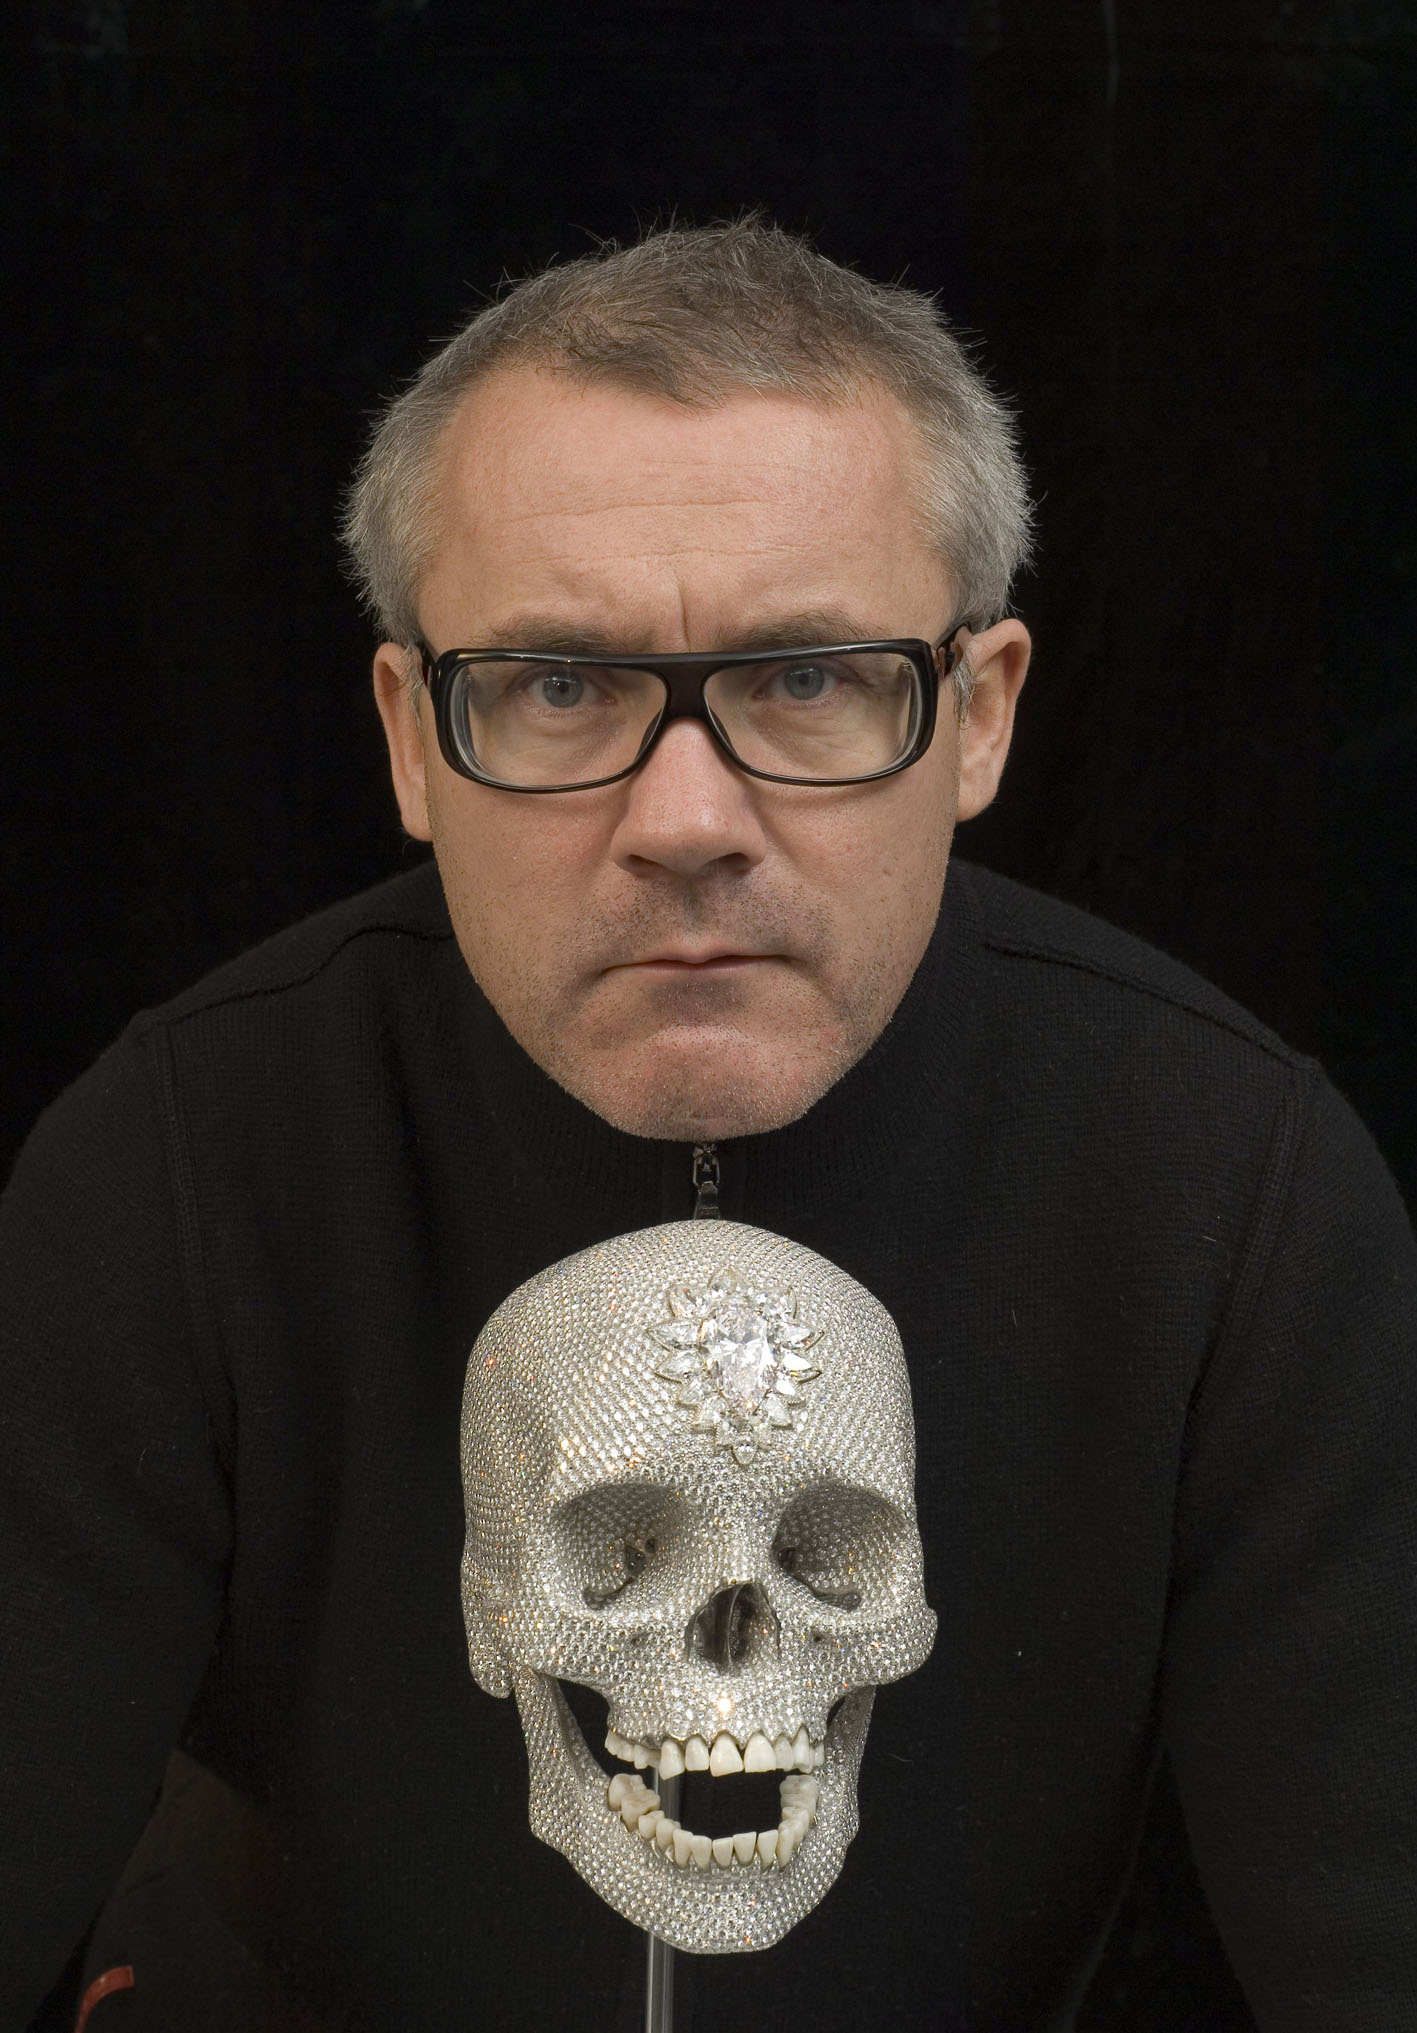 Damien Hirst and platinum skull Image source: https://garethleaney.wordpress.com